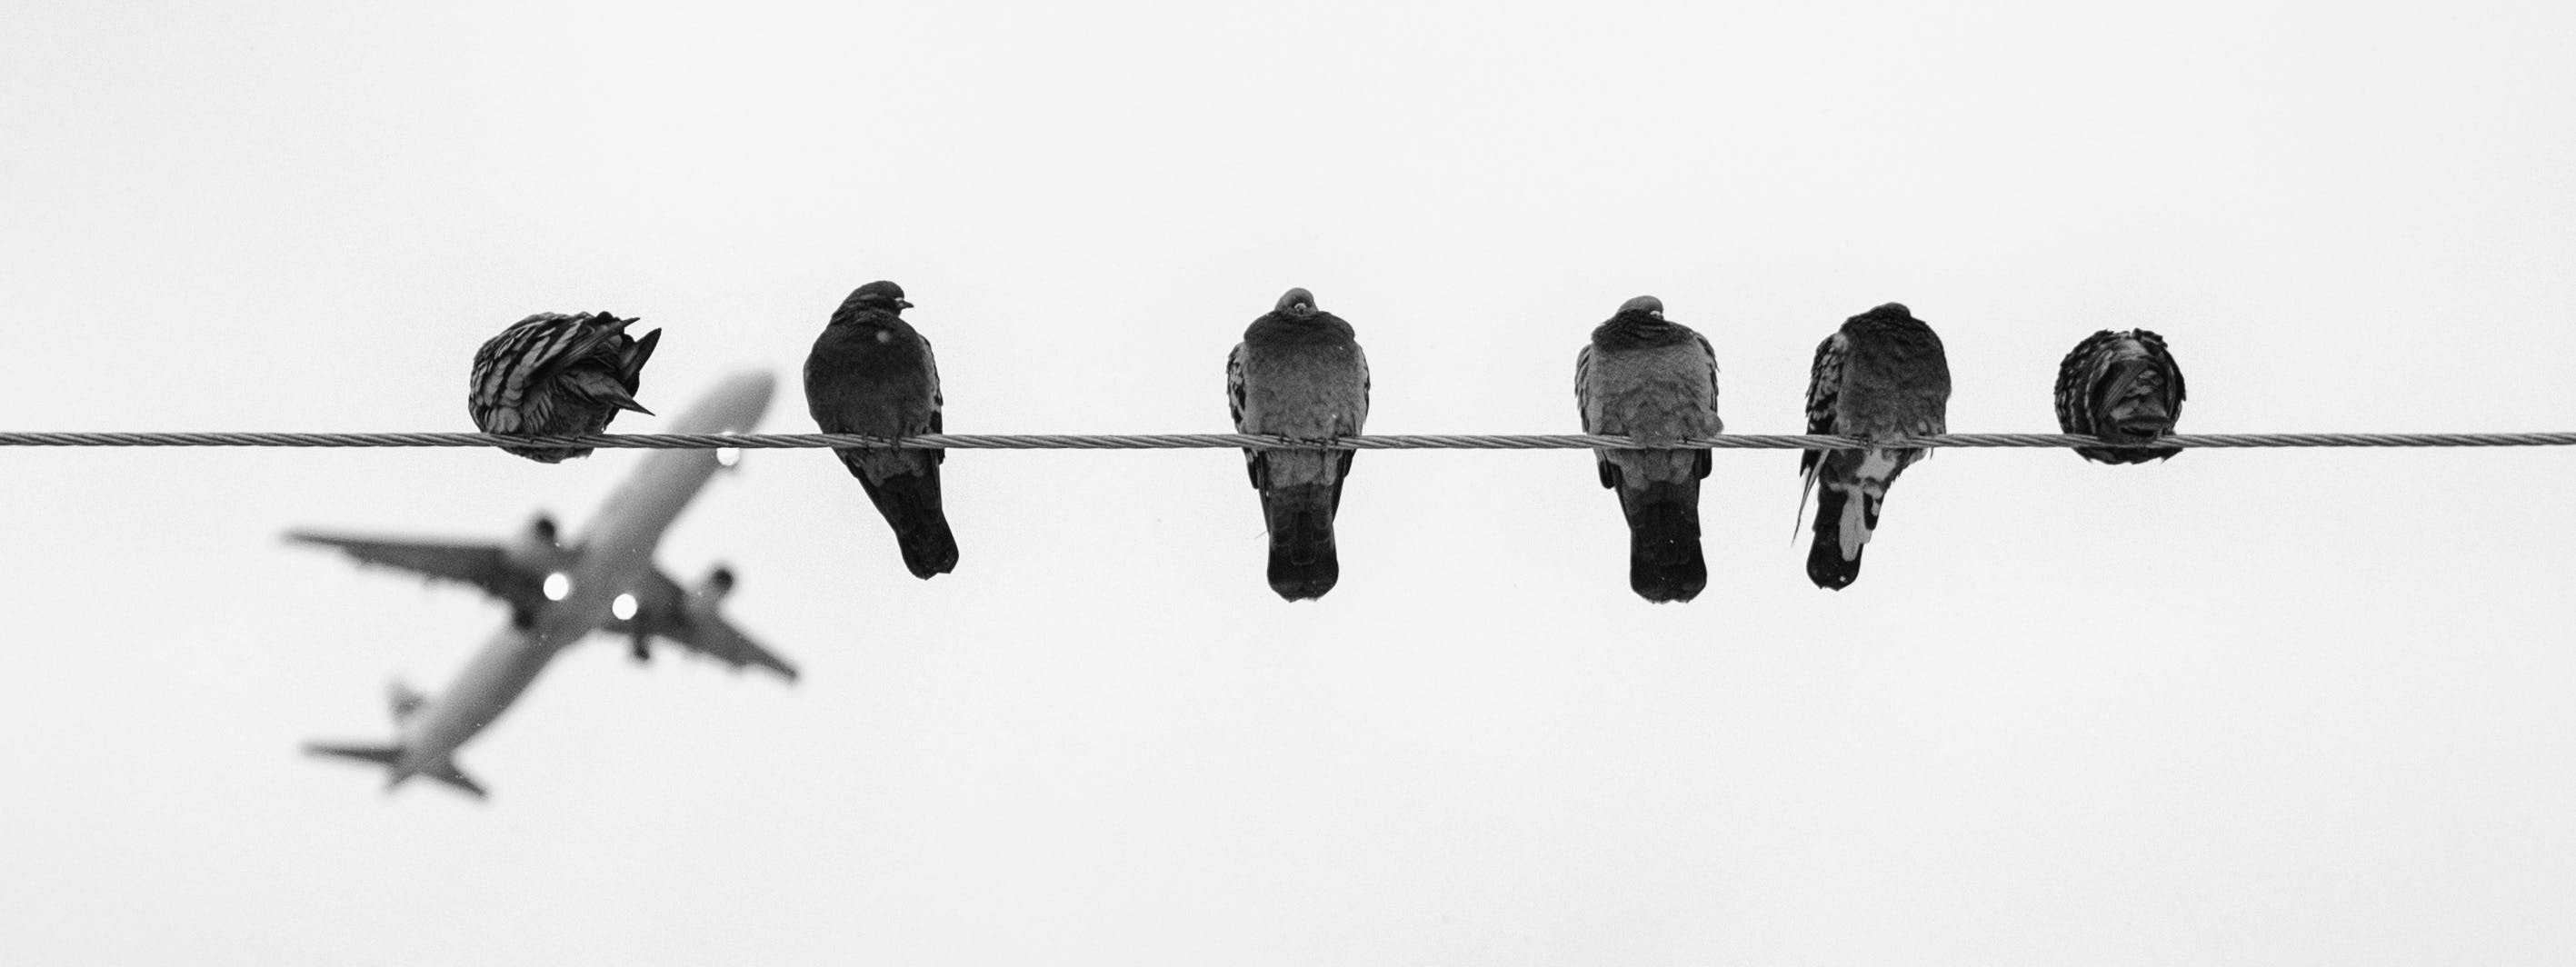 Black and Grey Birds on Wire during Daytime